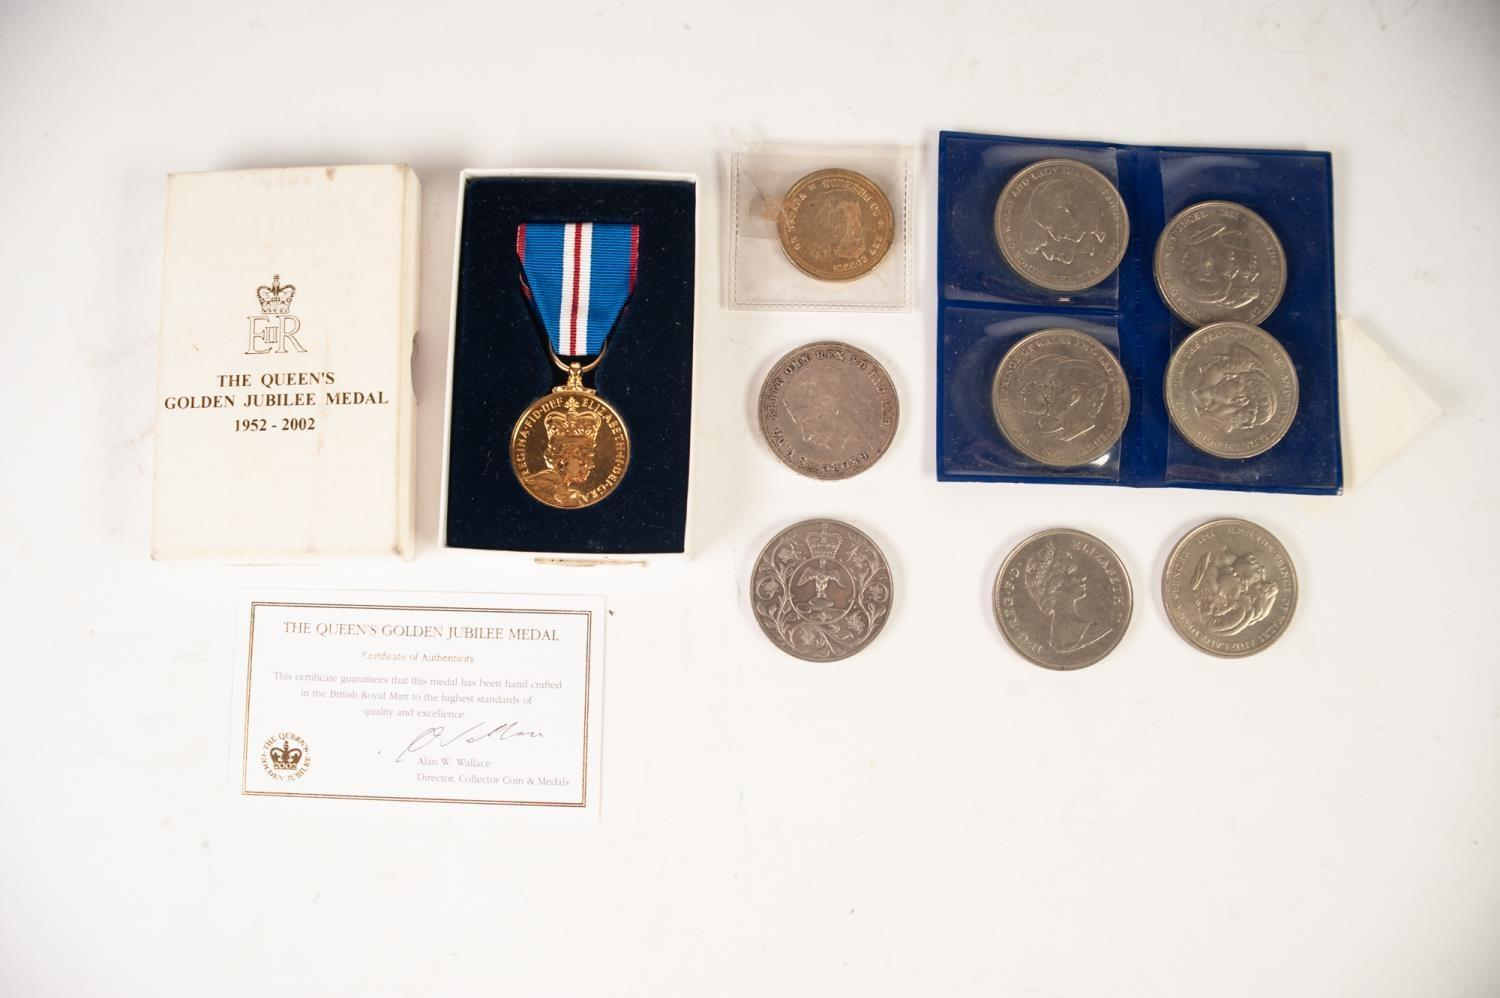 Lot 18 - GEORGE V SILVER CROWN COIN 1935 (EF), TOGETHER WITH A SELECTION OF QUEEN ELIZABETH III CROWN AND